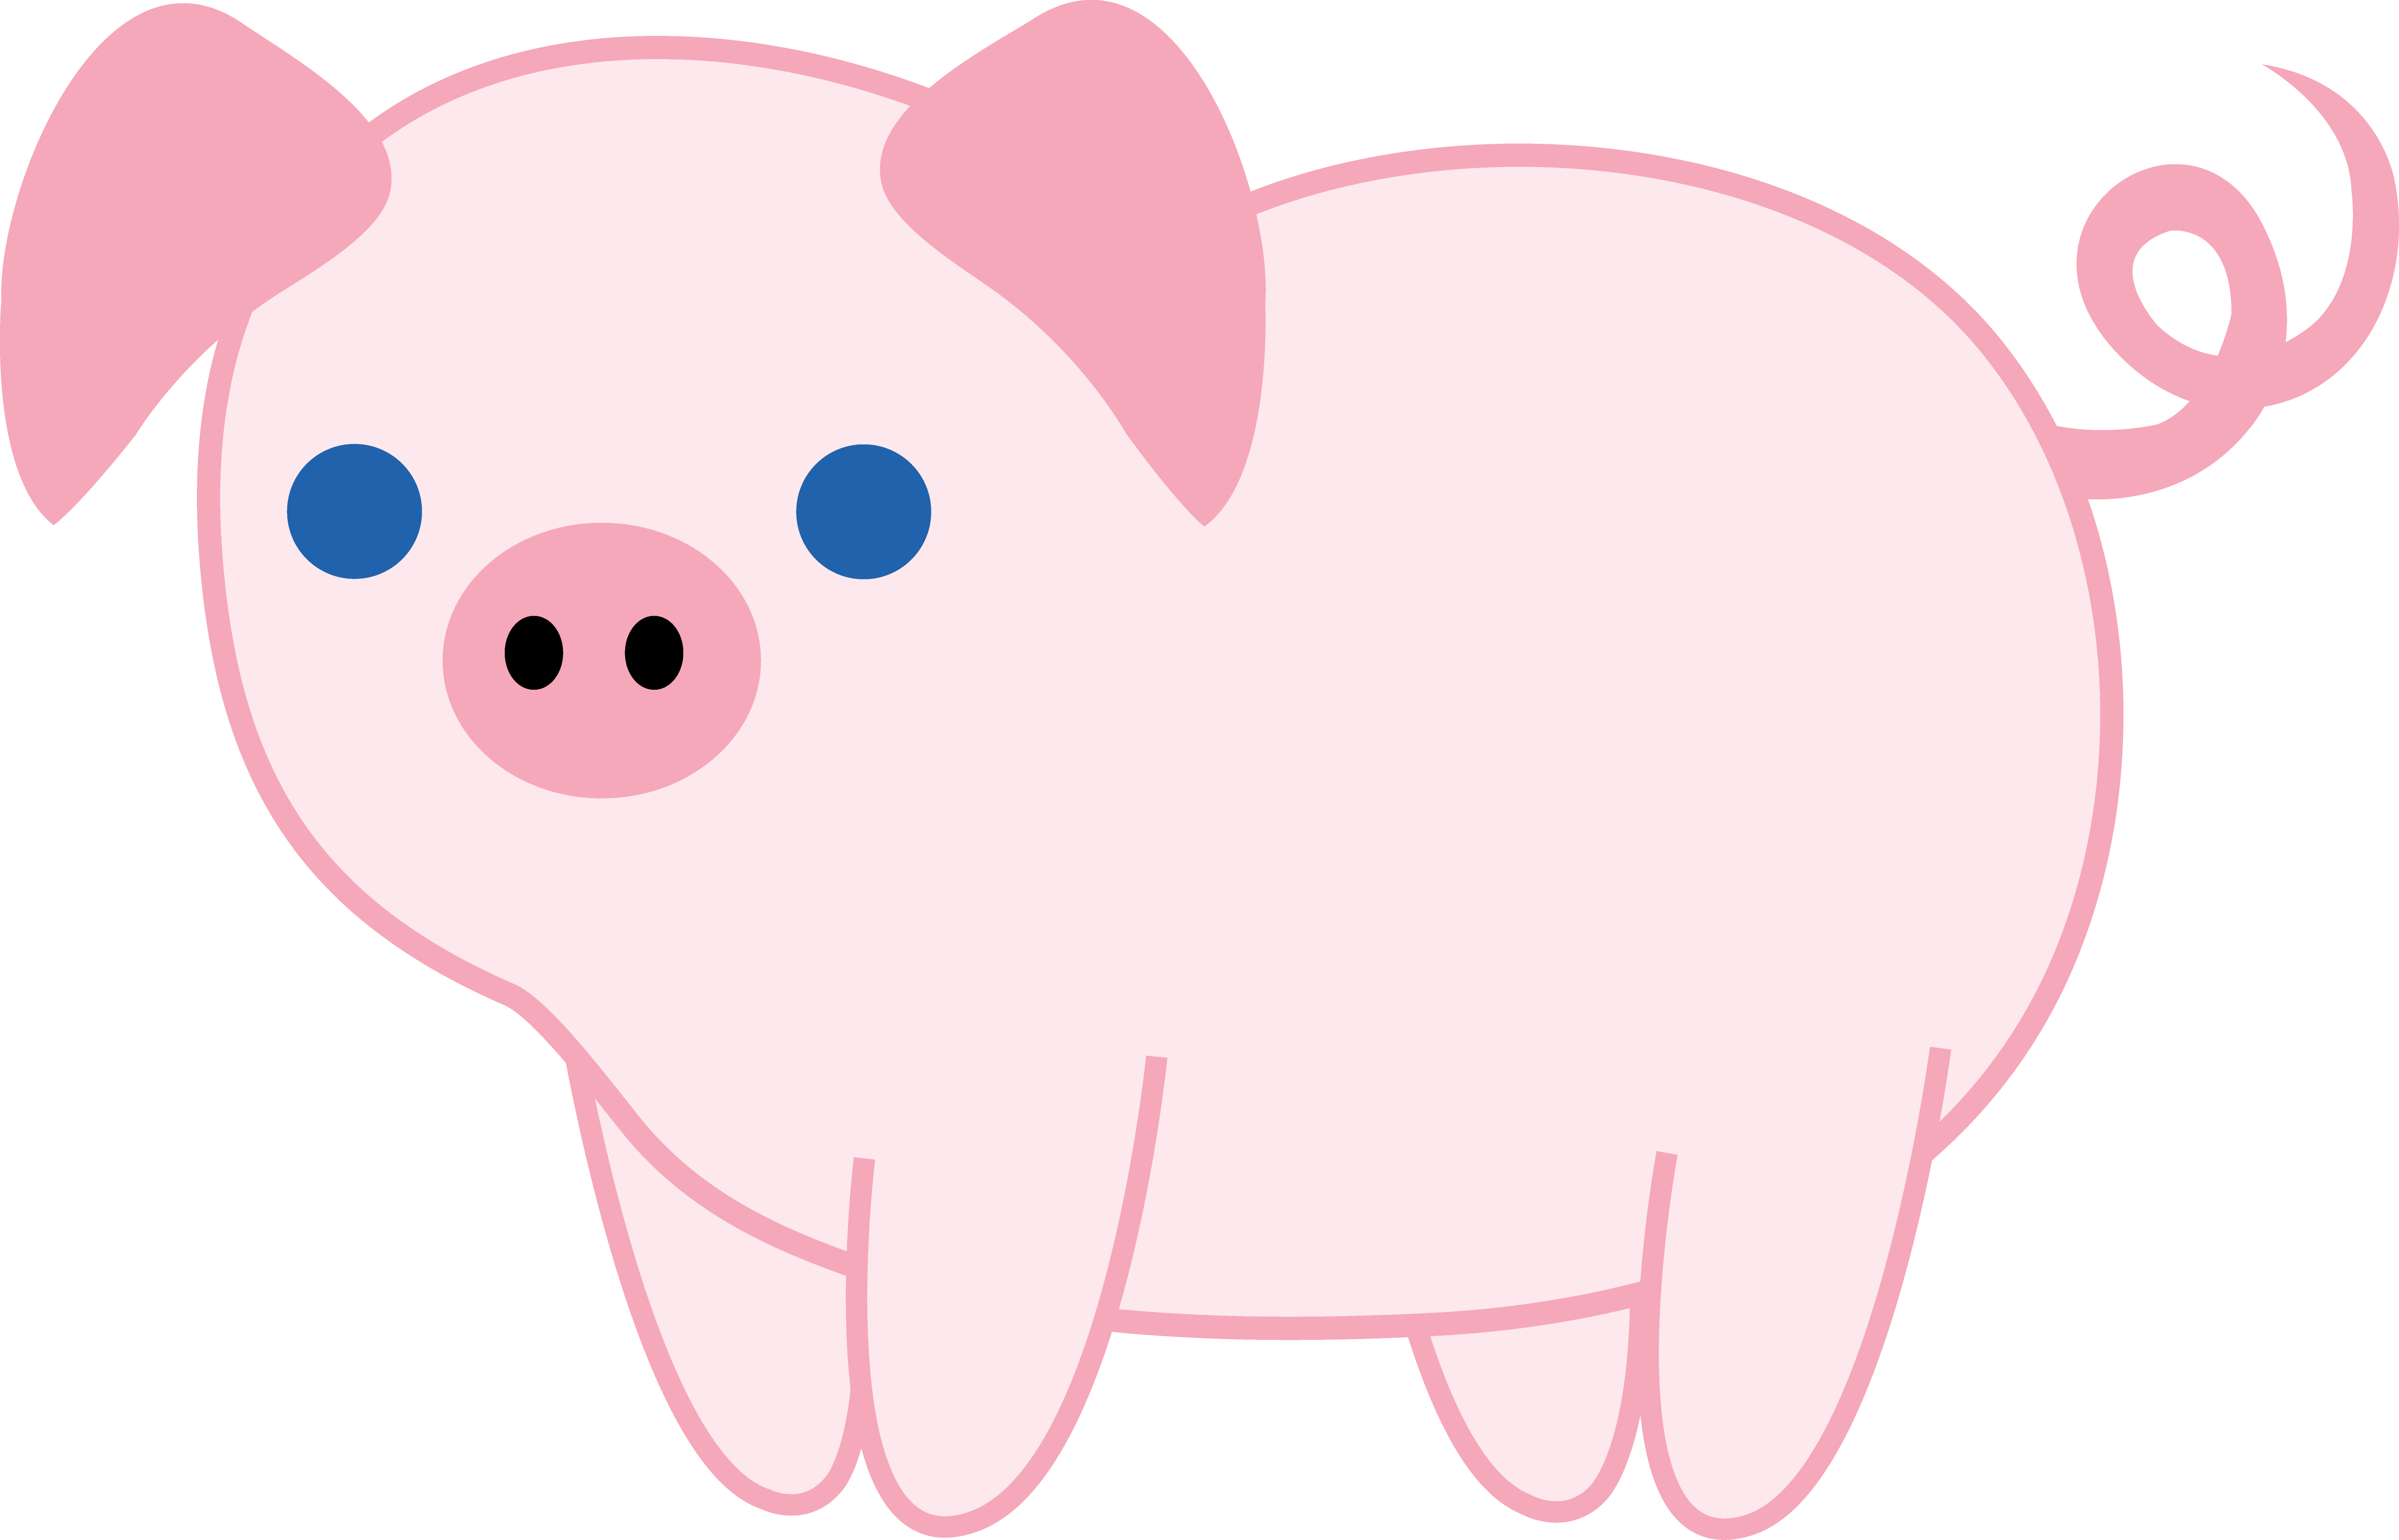 Cute animal clipart at. Pig clip art baby pig banner black and white library